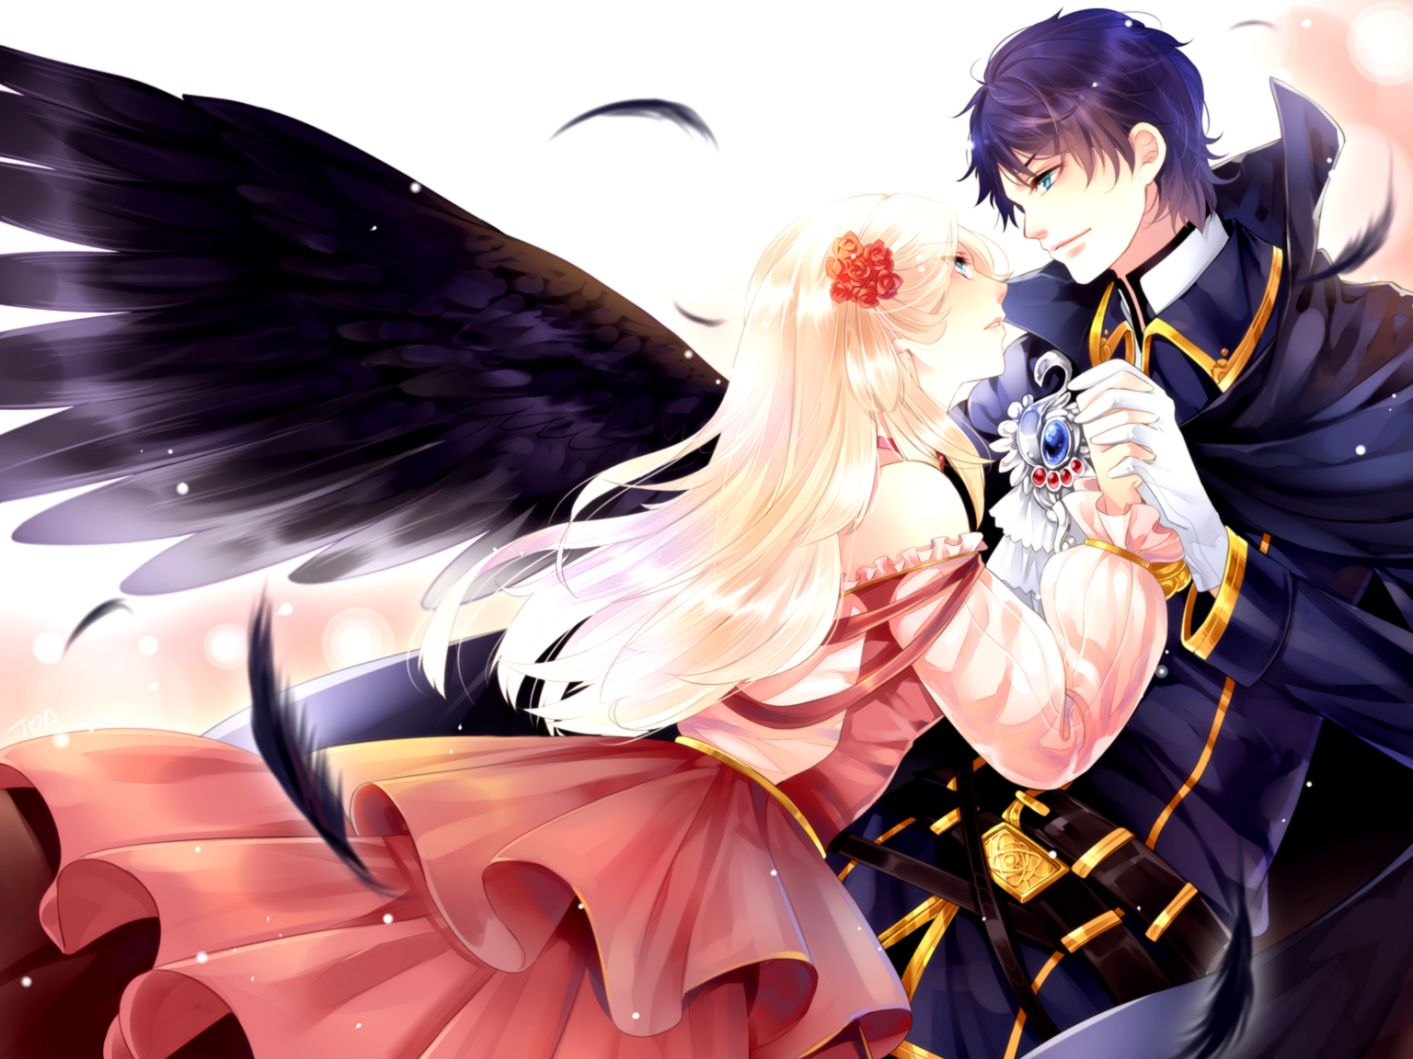 Anime Angel Wings Wallpaper Cool Hd Hd Wallpapers Gallery